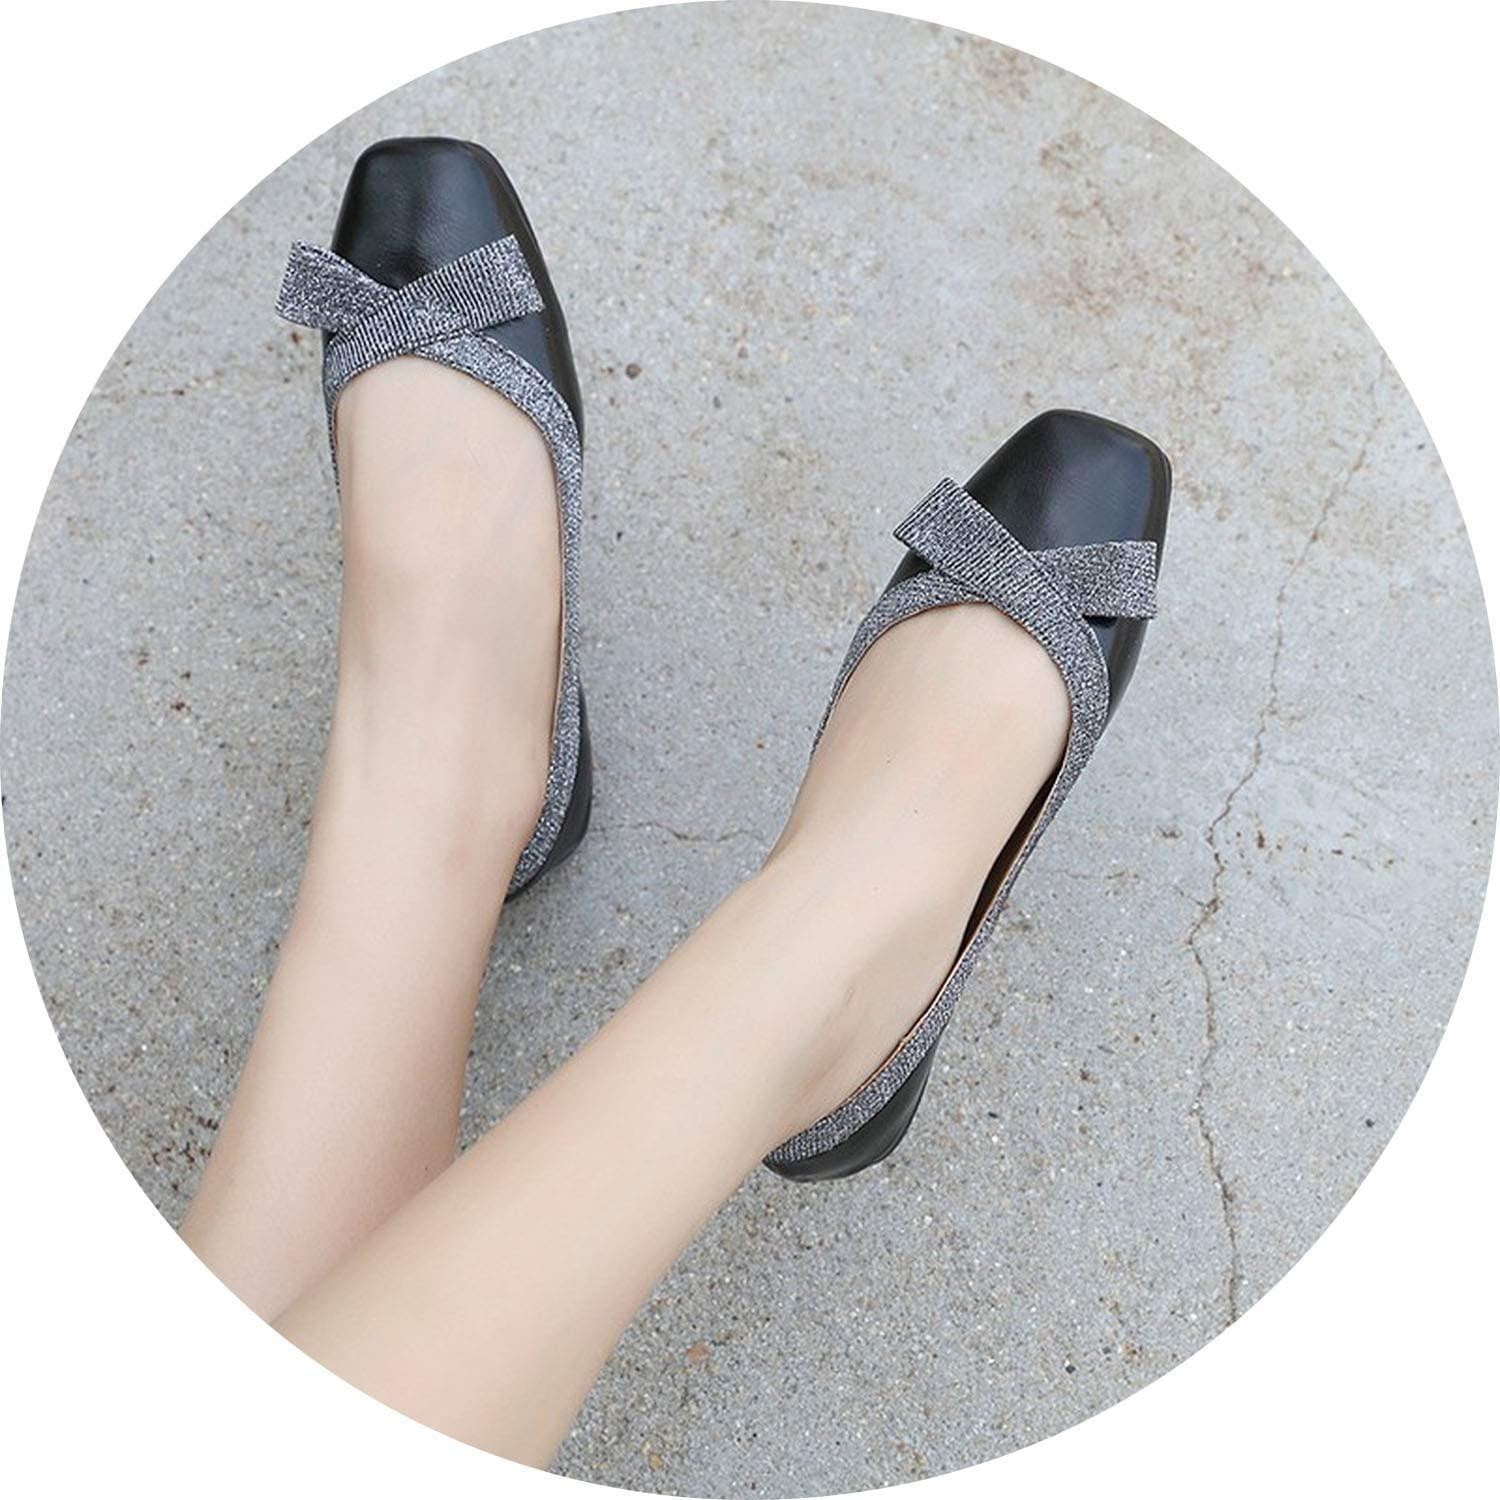 2019 Women Flat shoes Casual Loafers Woman Square Toe Bow-tie Bling Soft Oxford shoes